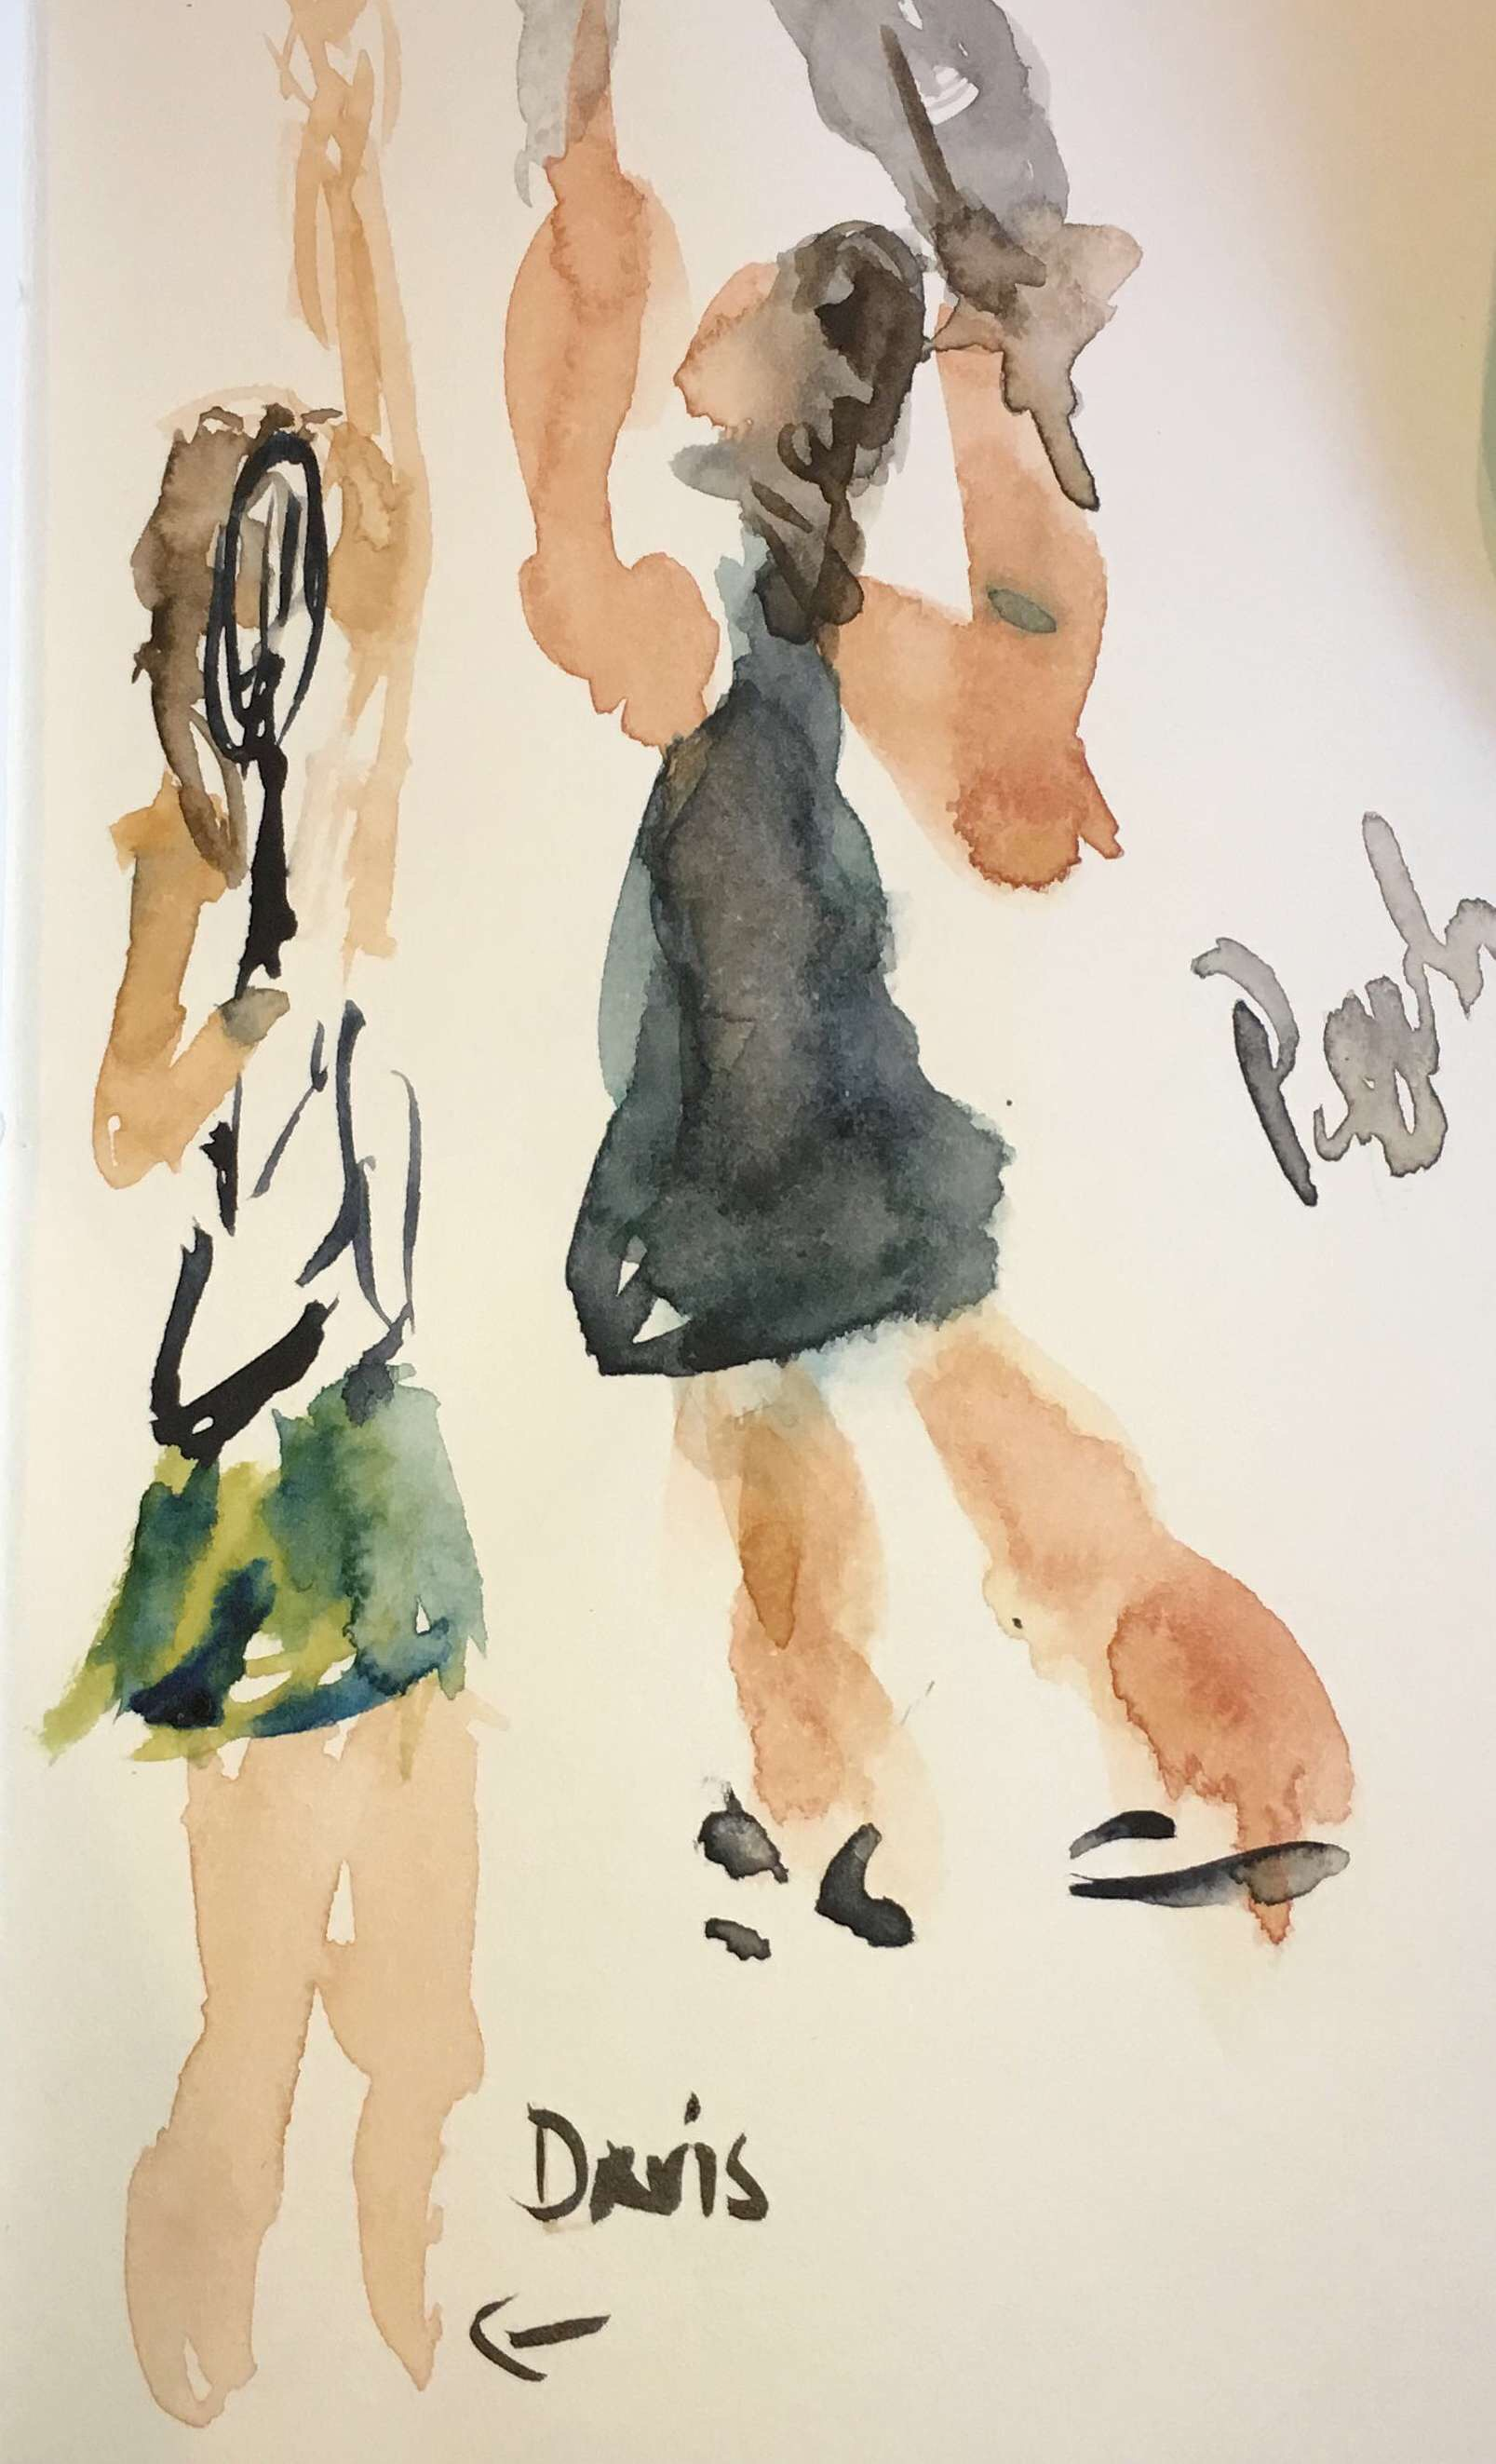 Davis & Pegula hitting serves in watercolor